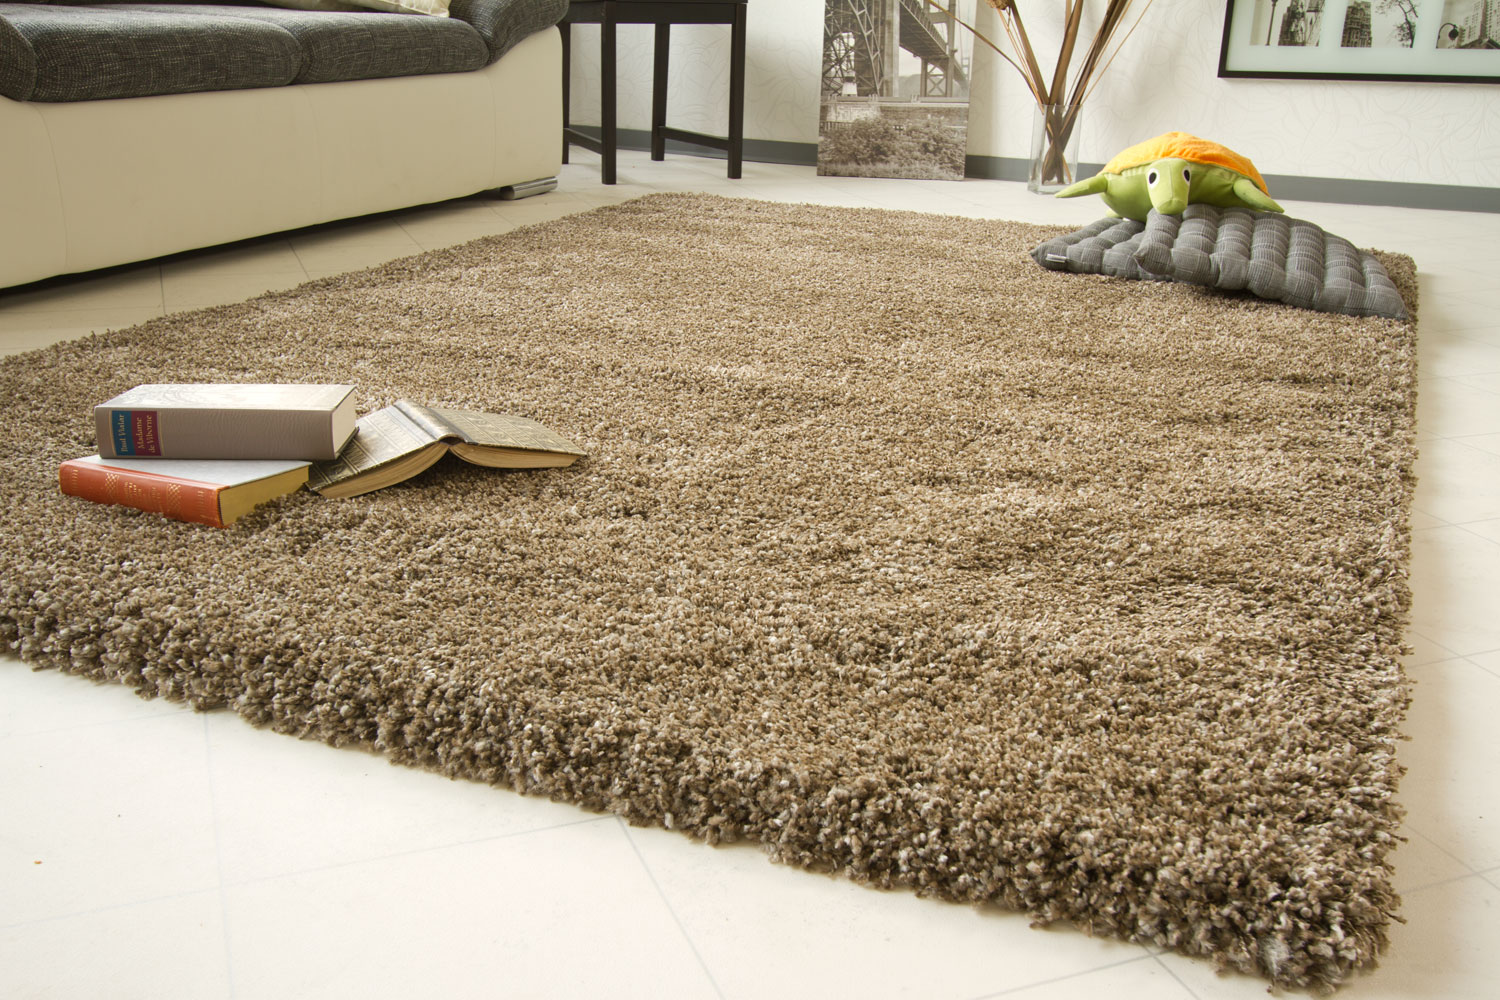 Cupboard Furniture Designs likewise File Rhiannon Fish  8551691008 besides 6 together with Grey Colour Trends Every Type Flooring in addition Real Homes. on living room with carpet